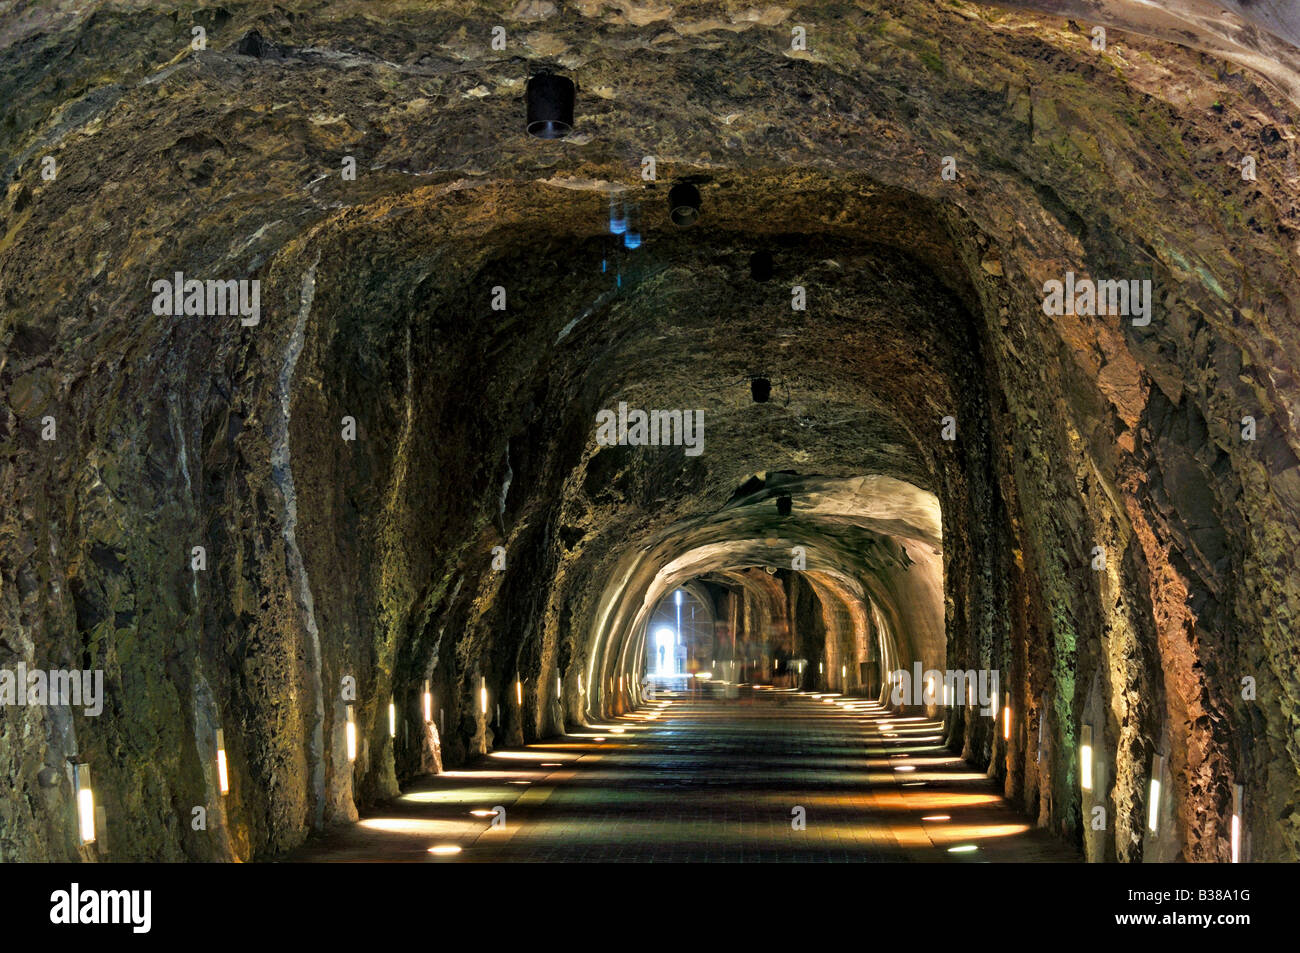 tunnel of atalaya in laredo cantabria spain stock photo royalty free image 19237836 alamy. Black Bedroom Furniture Sets. Home Design Ideas